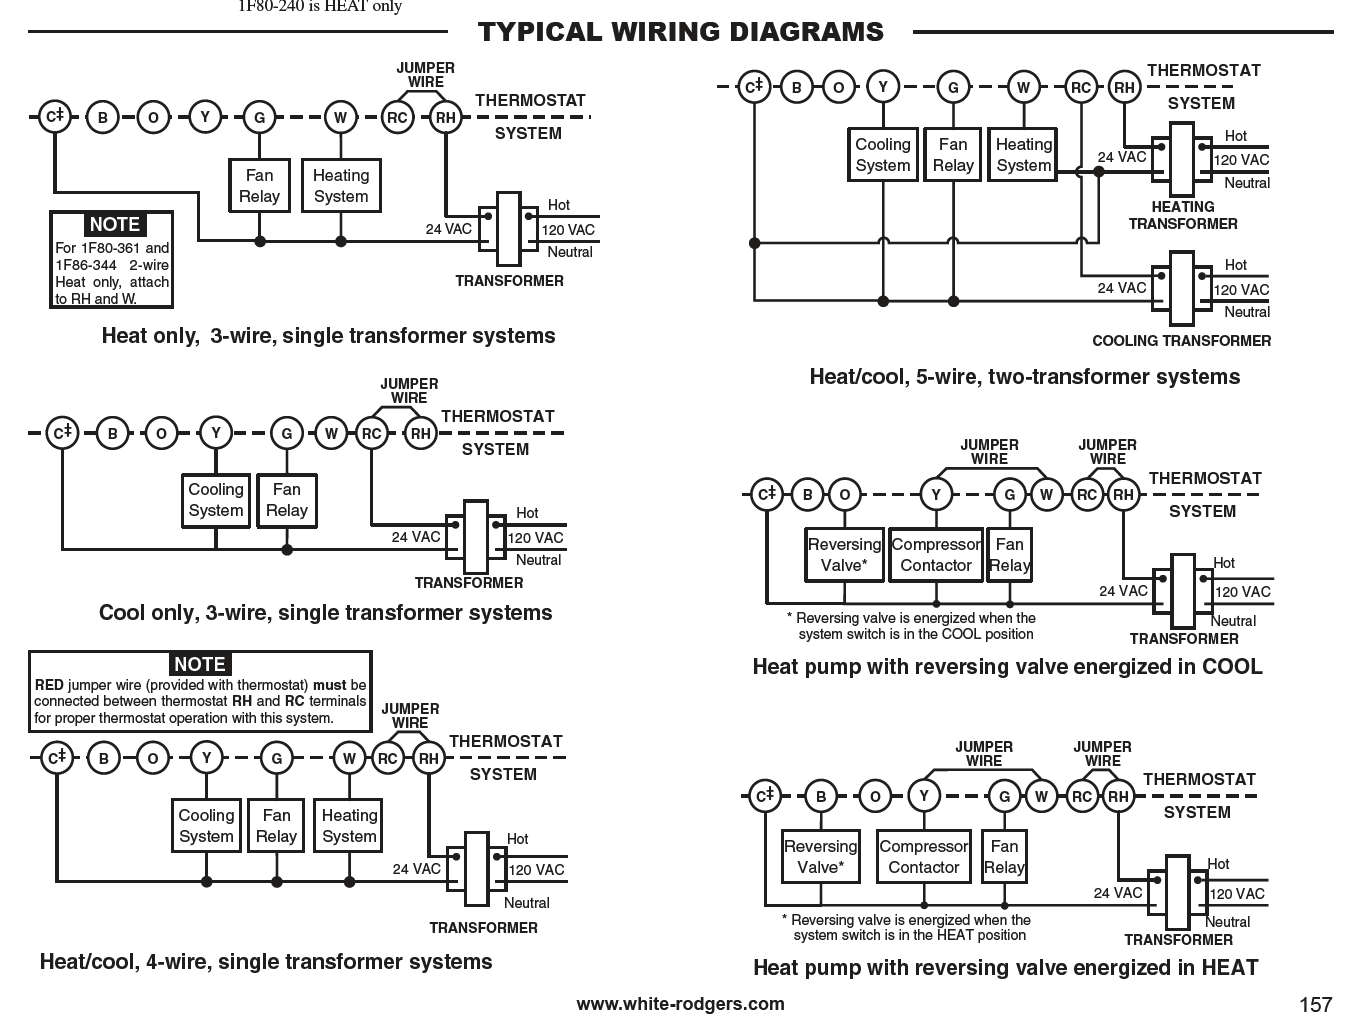 3 wire thermostat wiring diagram 1996 chevy 1500 how a white rodgers room